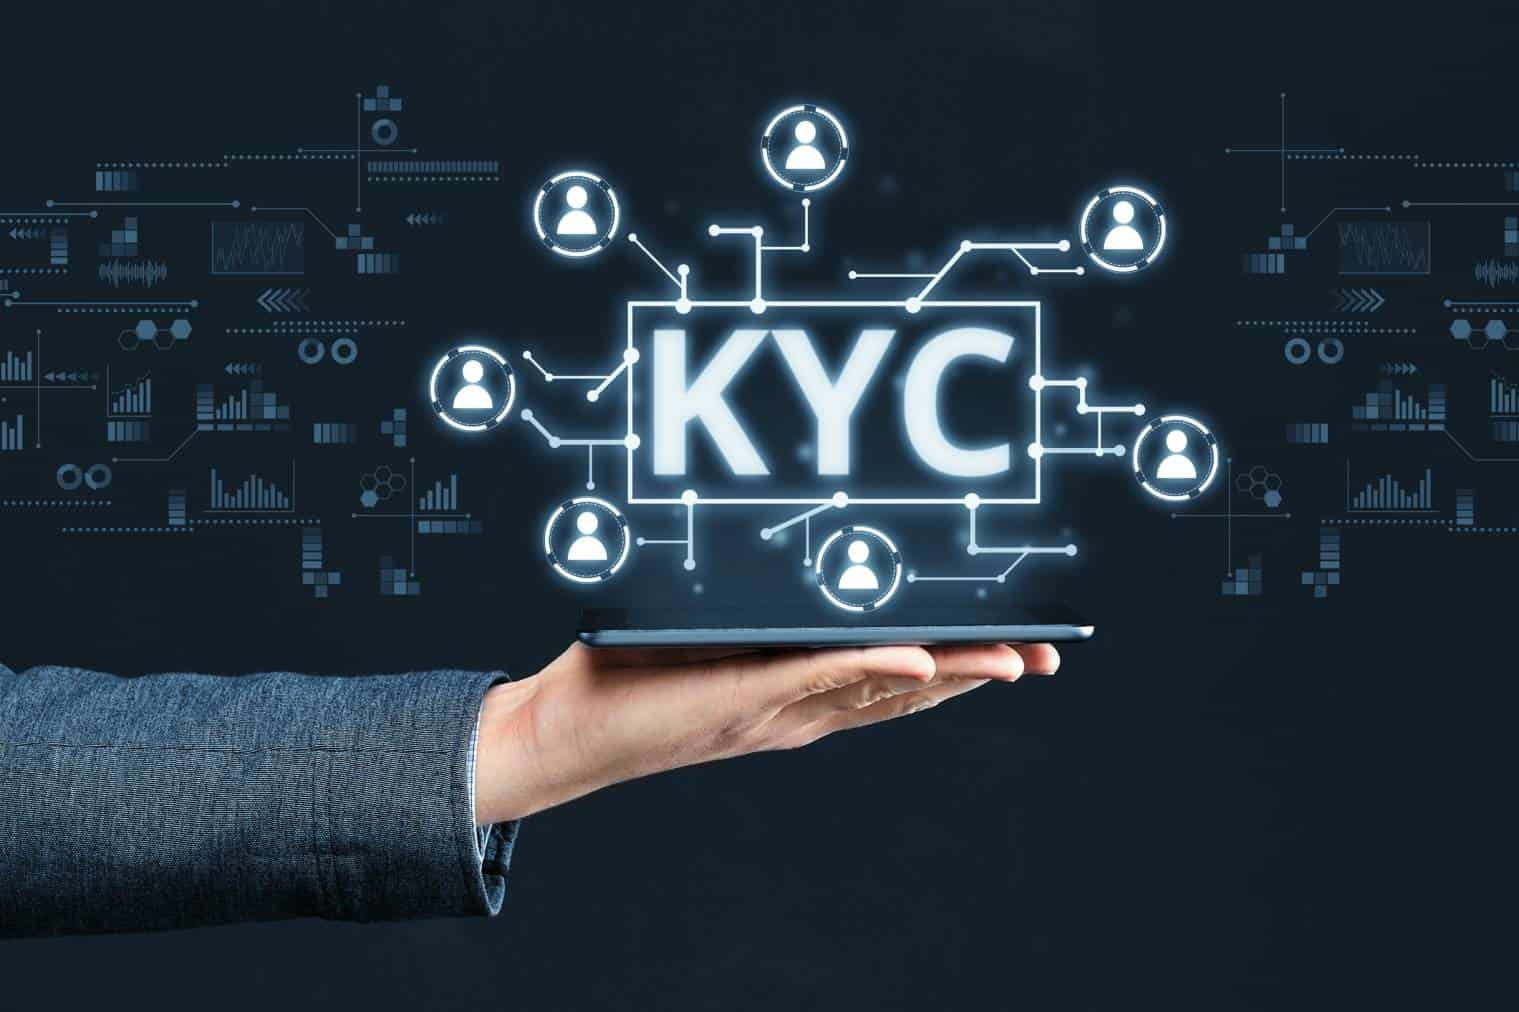 Identity documents for the KYC procedure